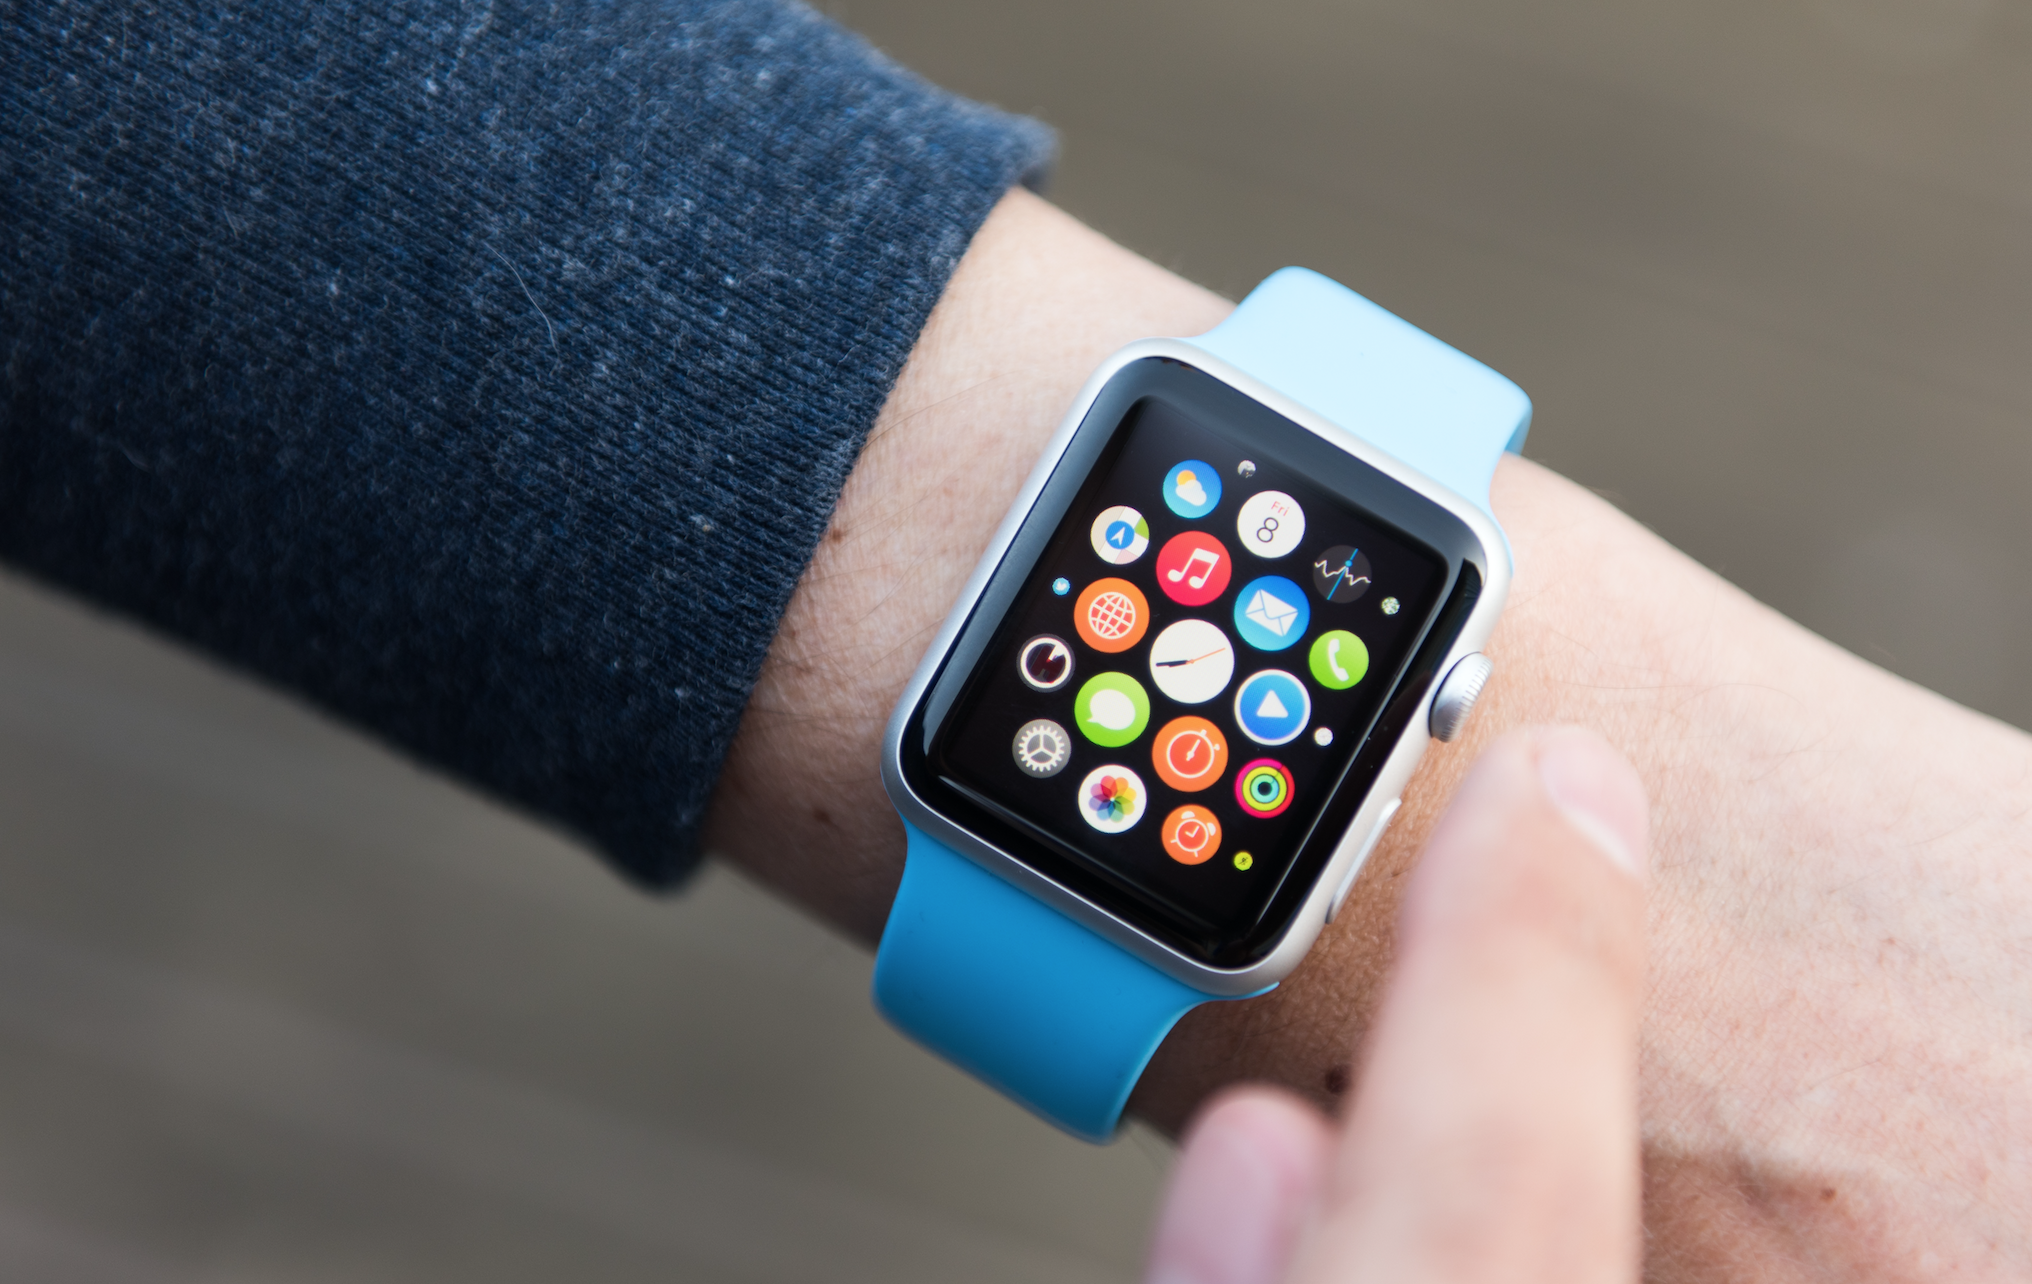 Apple Watch could gain long-sought glucose tracking with Rockley Photonics deal: report